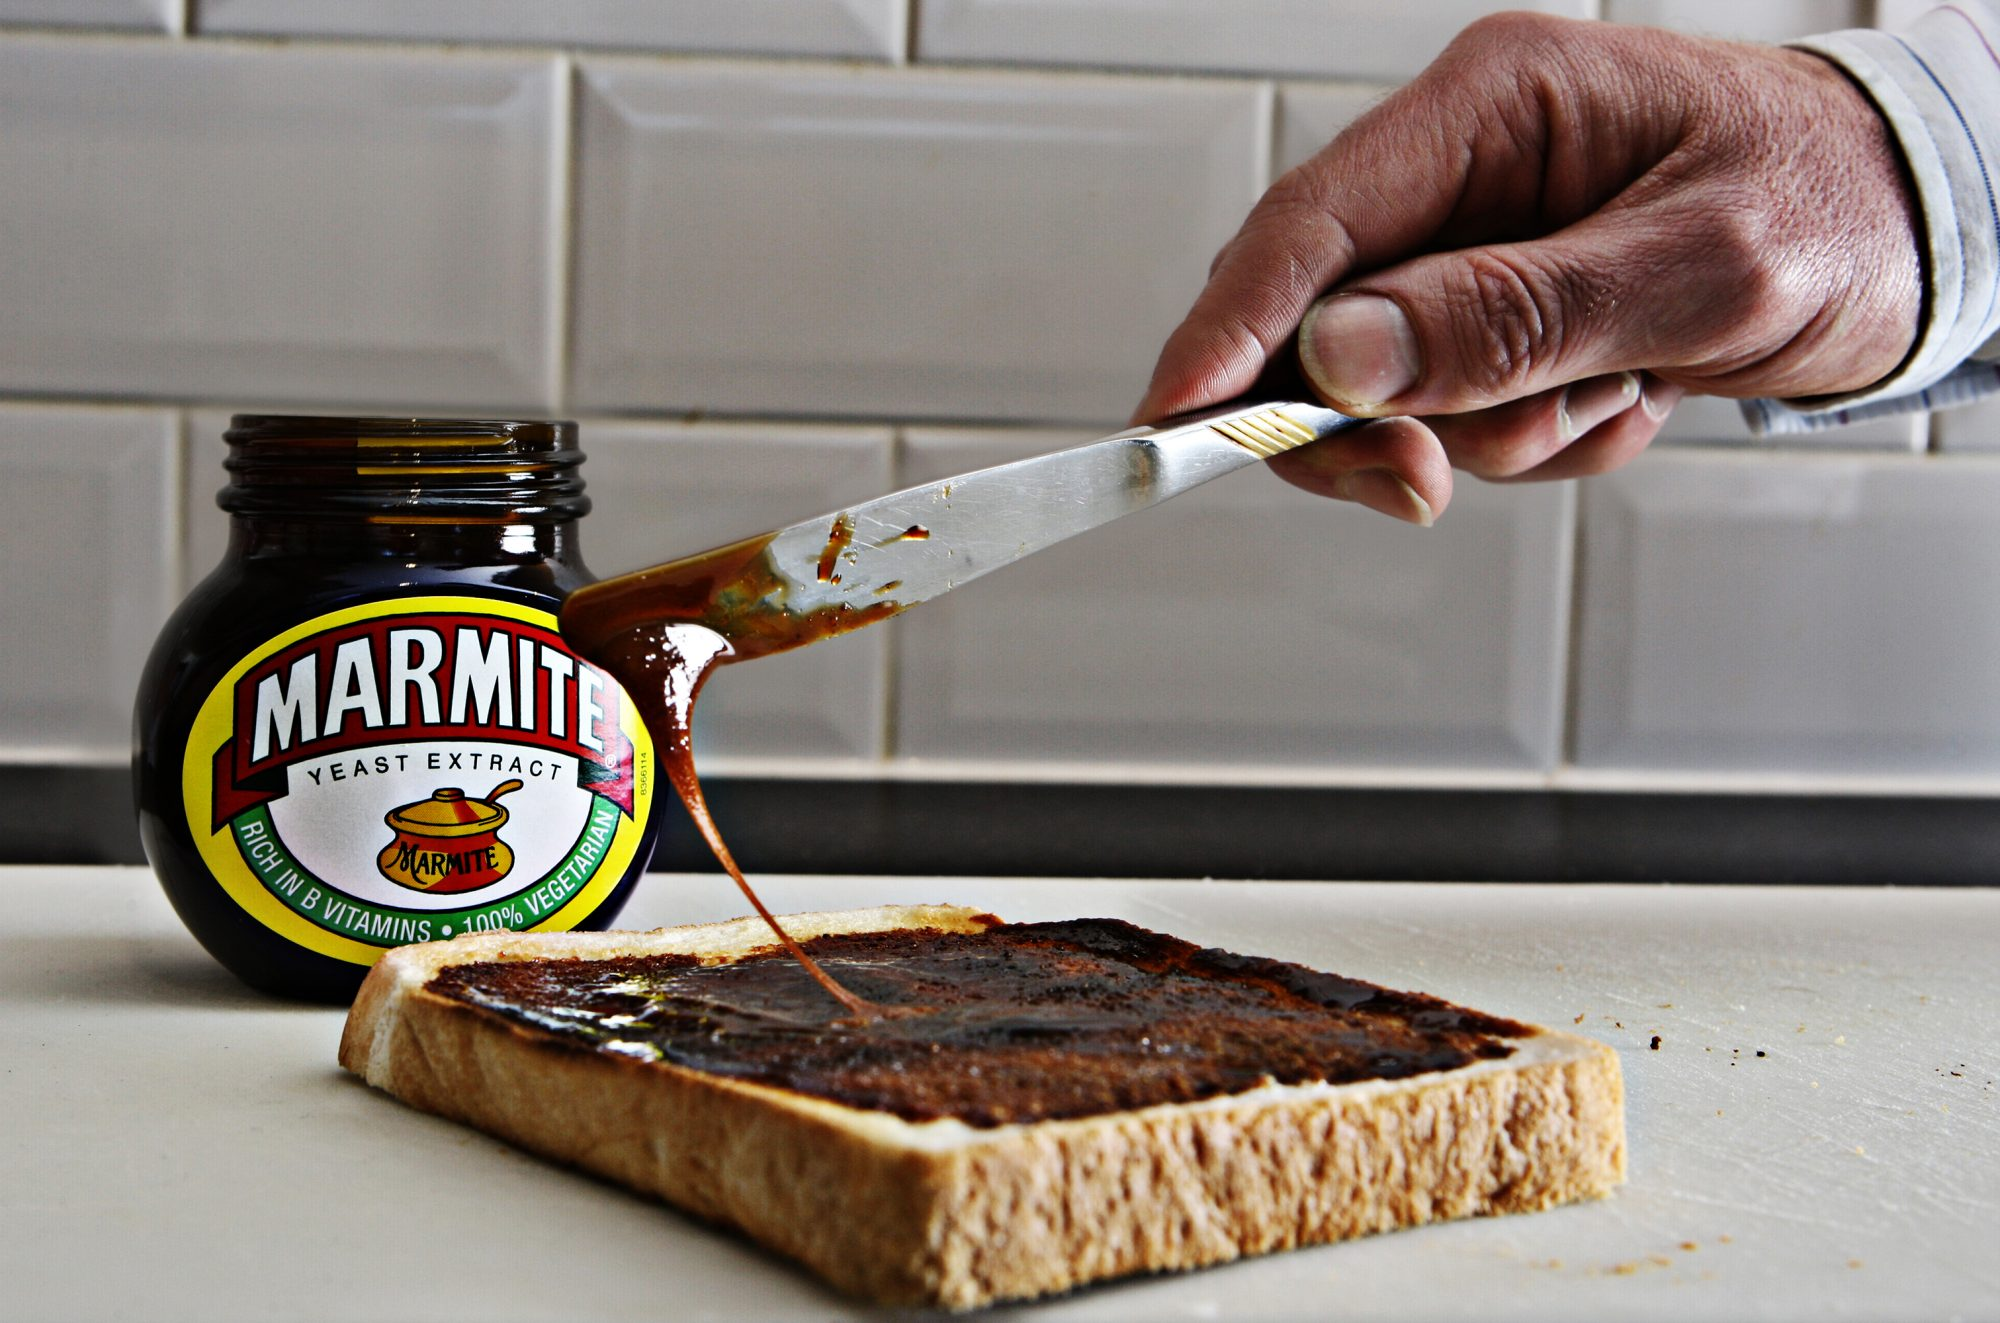 a jar of marmite next to a piece of toast being spread with marmite